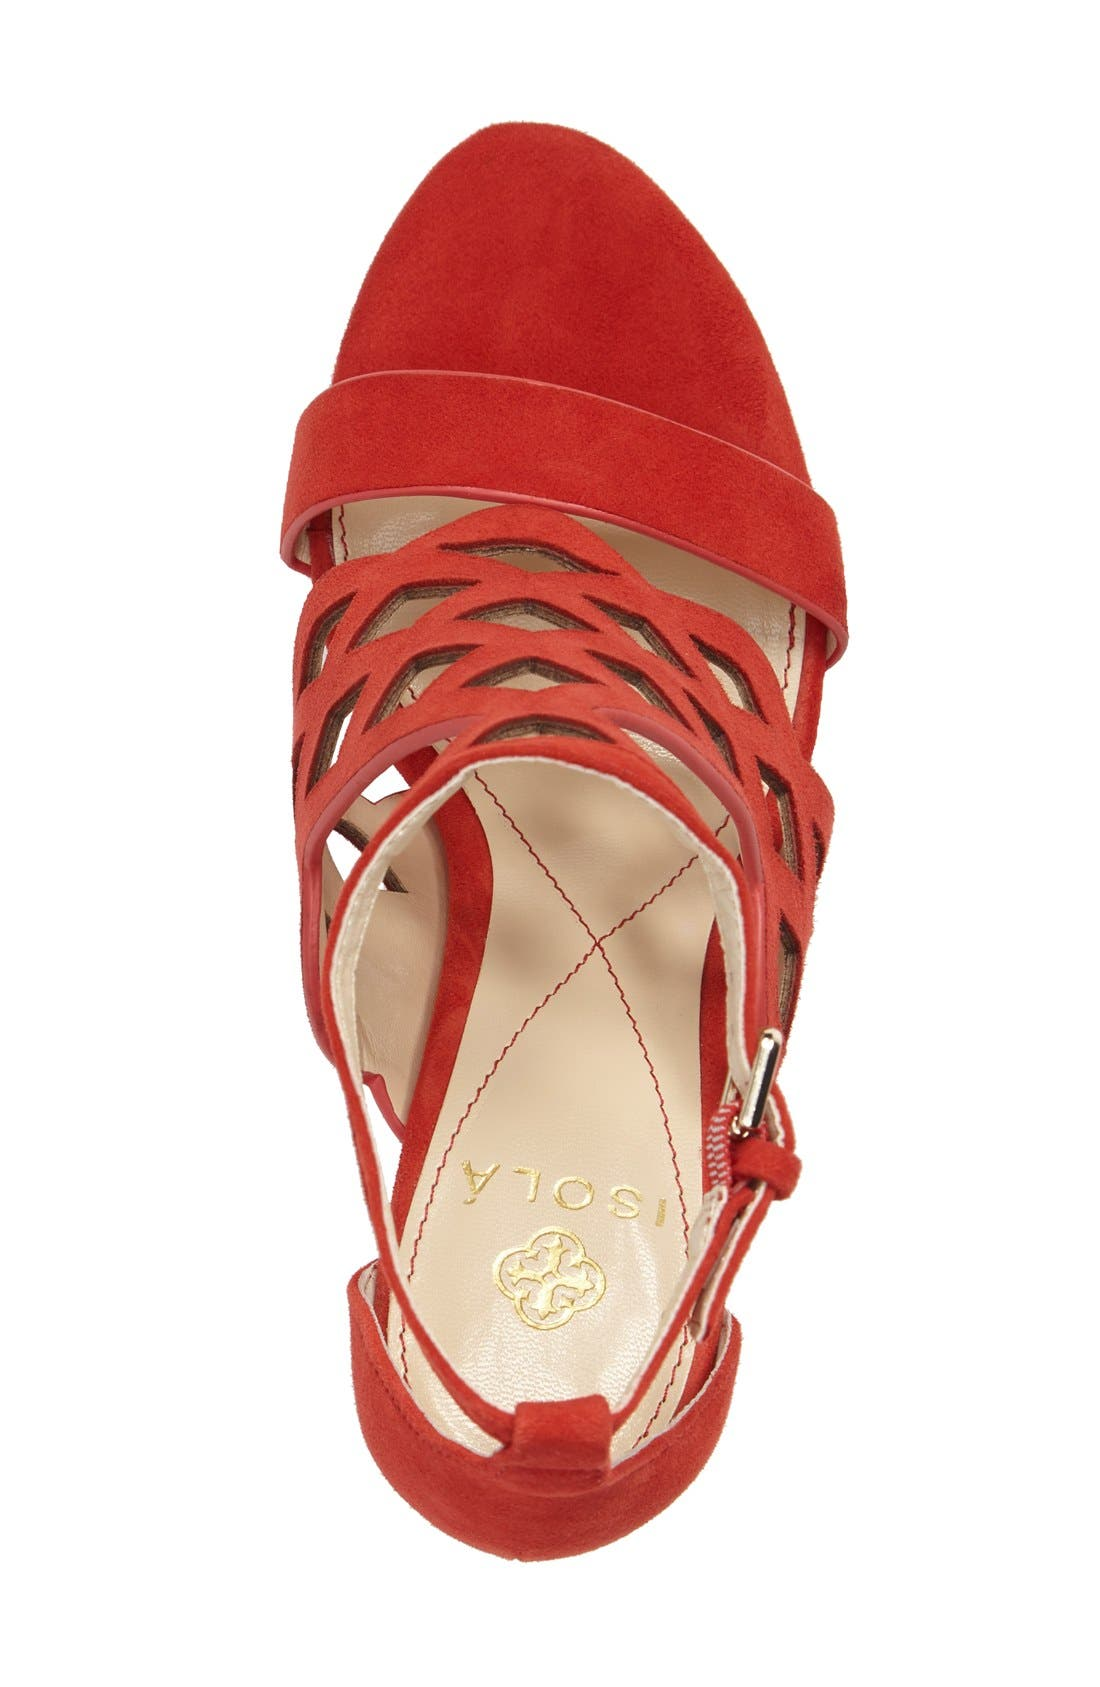 Despina Cutout Ankle Strap Sandal,                             Alternate thumbnail 8, color,                             LIPSTICK RED SUEDE